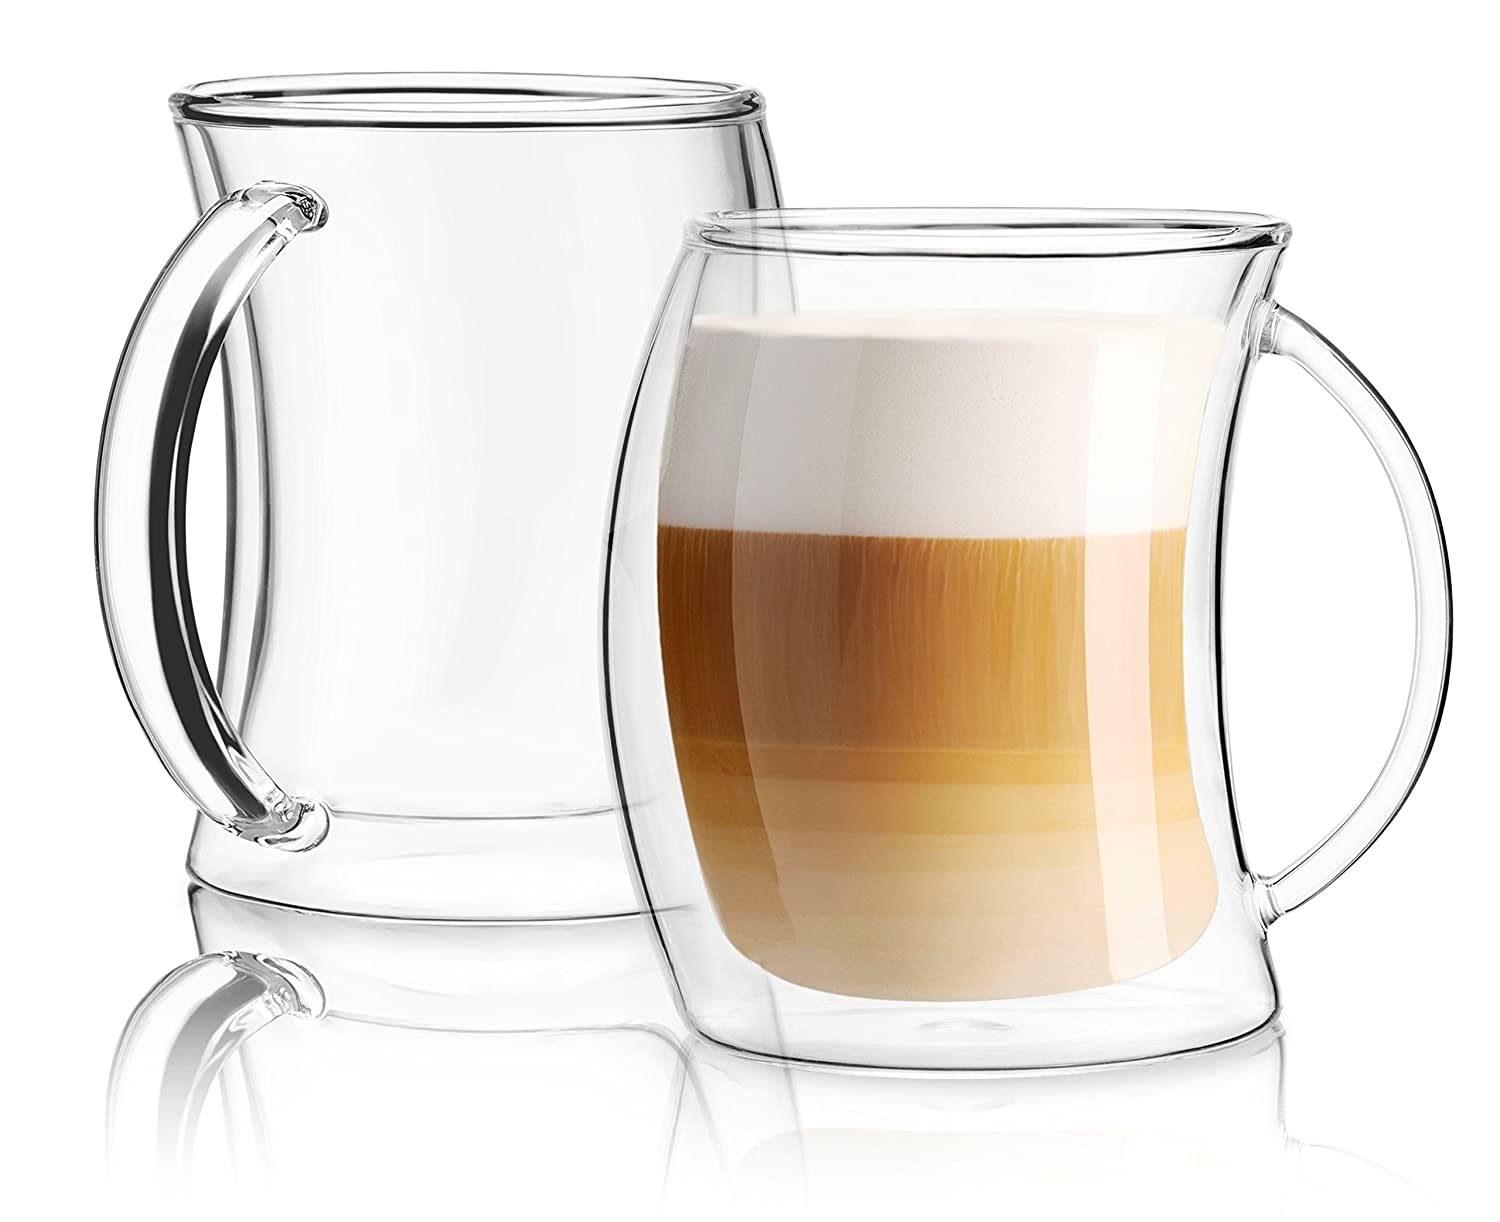 JoyJolt Caleo Collection Glass Coffee Cups Double Wall Insulated Mugs Set Of 2 (13 oz,390ml)